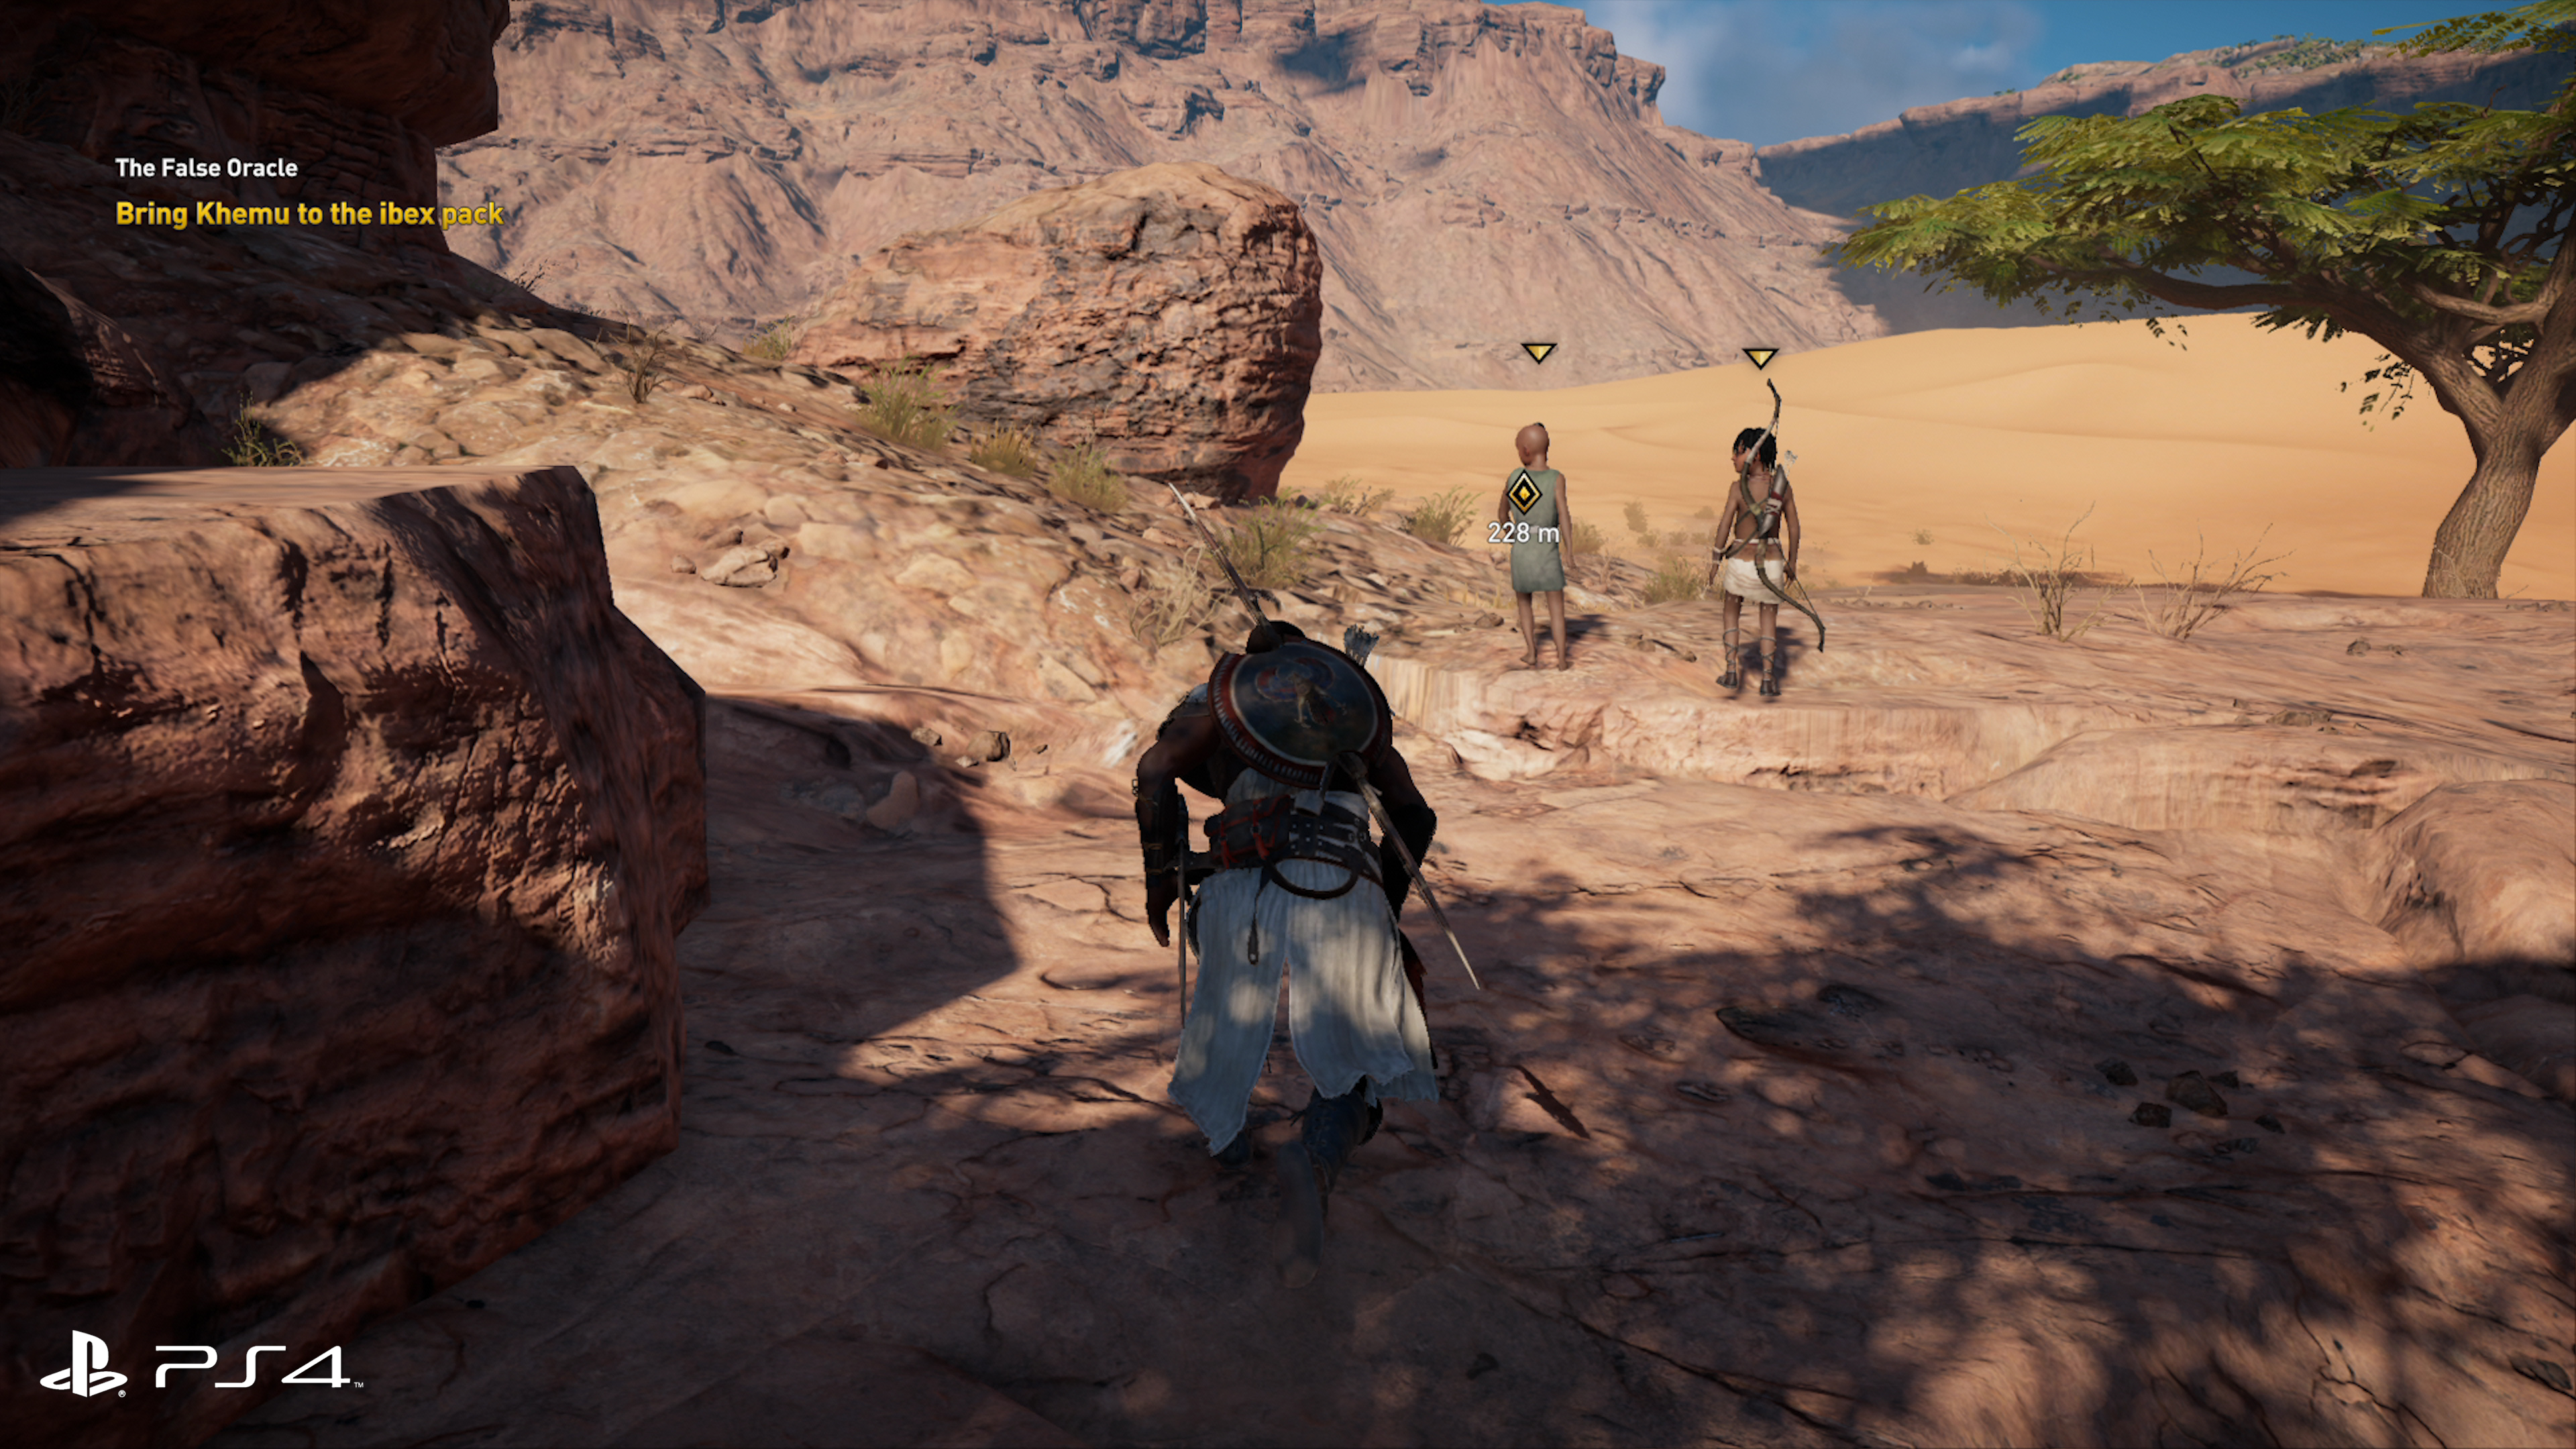 How does Assassin's Creed Origins on Pro improve over base